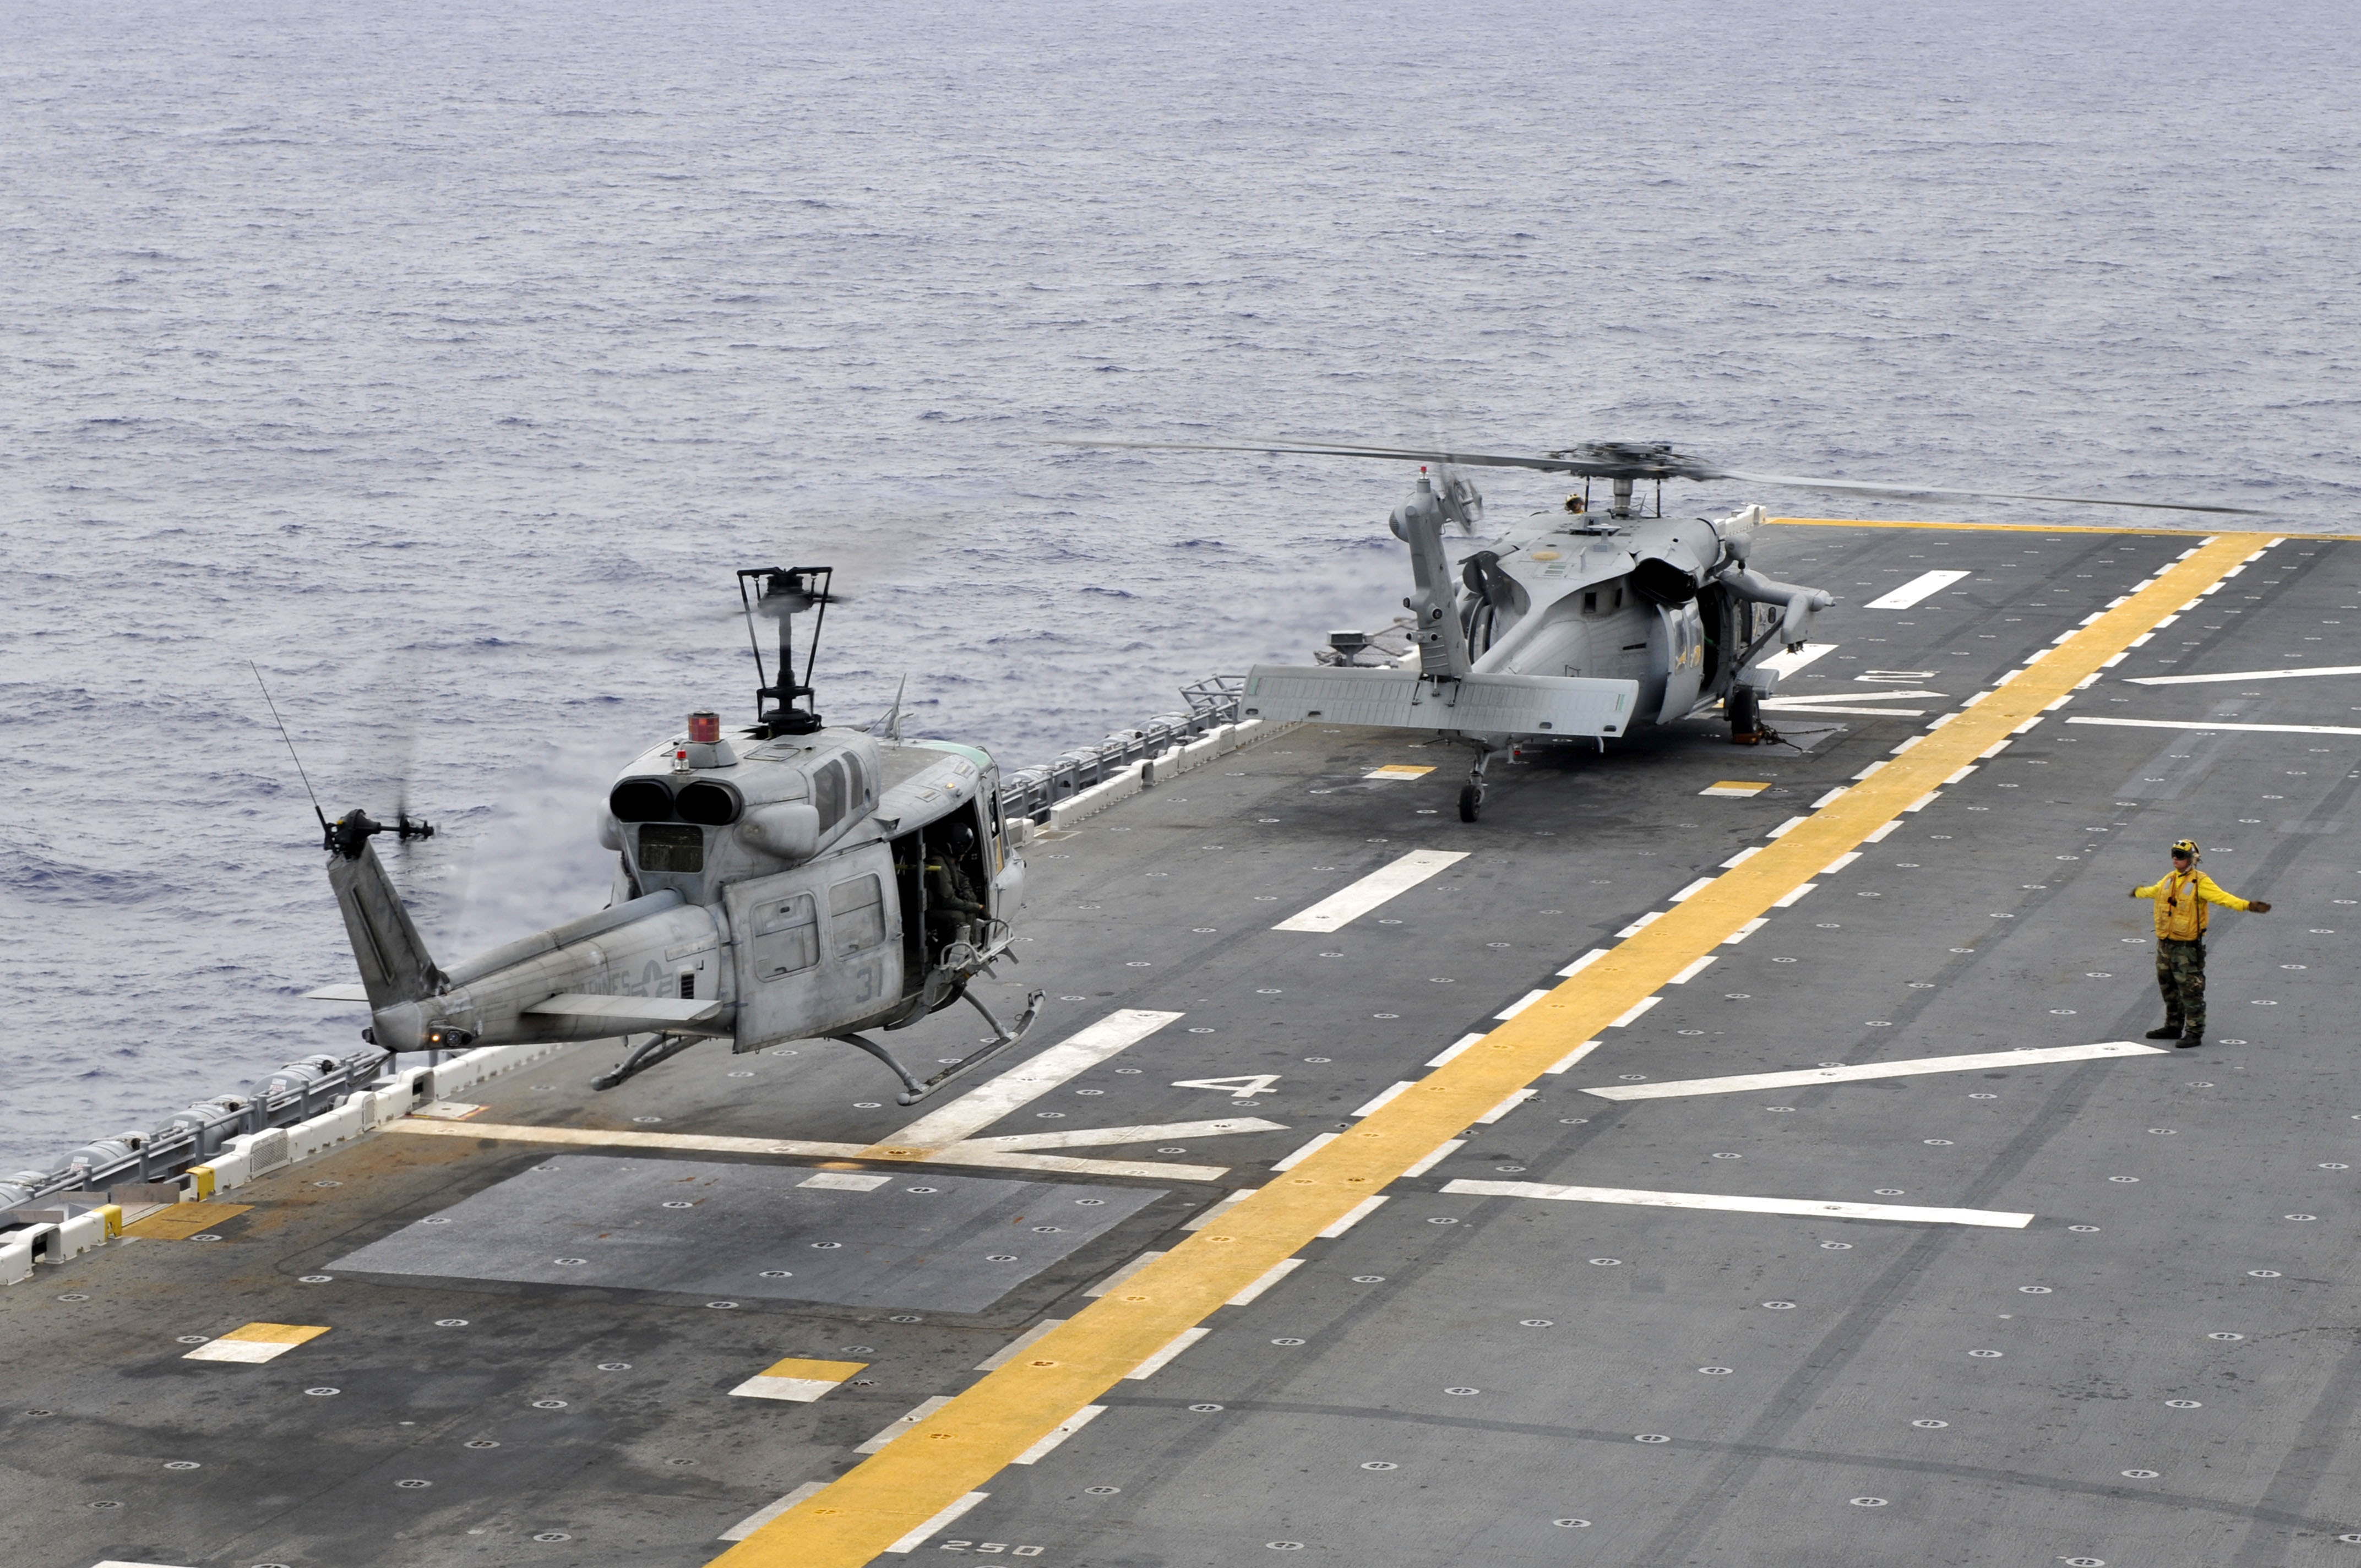 helicopter operations at sea with File Us Navy 111010 N Km175 074 A Uh 1n Huey Helicopter Assigned To The Marine Medium Helicopter Squadron  Hmm  265 Takes Off From The Forward Deployed on File US Navy 090826 N 4649B 094 An MH 53 Sea Dragon helicopter assigned to the Blackhawks of Helicopter Mine Countermeasures Squadron  HM  15 prepares to land on the multi Purpose  hibious assault ship USS Bataan  LHD 5 as well File Apache Helicopter Takes off from HMS Ocean During Operation Ellamy MOD 45153052 as well Fsx North Sea Scenery in addition Arma2 Operation Arrowhead as well Helideck Perimeter  ting.